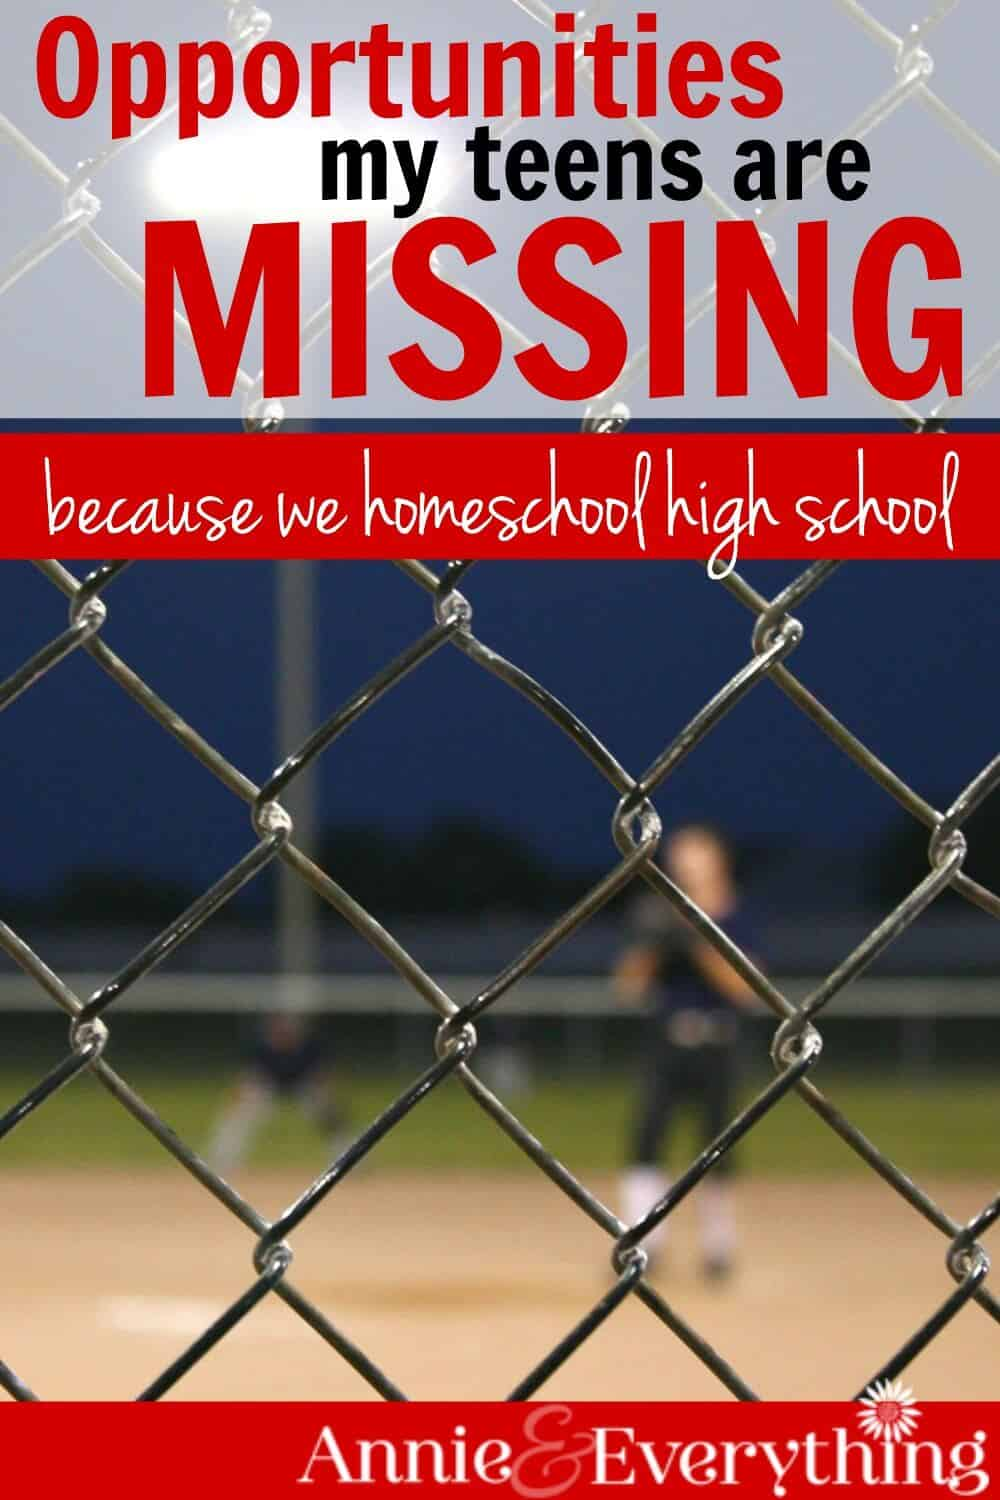 Afraid to homeschool high school because your kids will miss out on great opportunities? Read about our own experience -- it may surprise you!